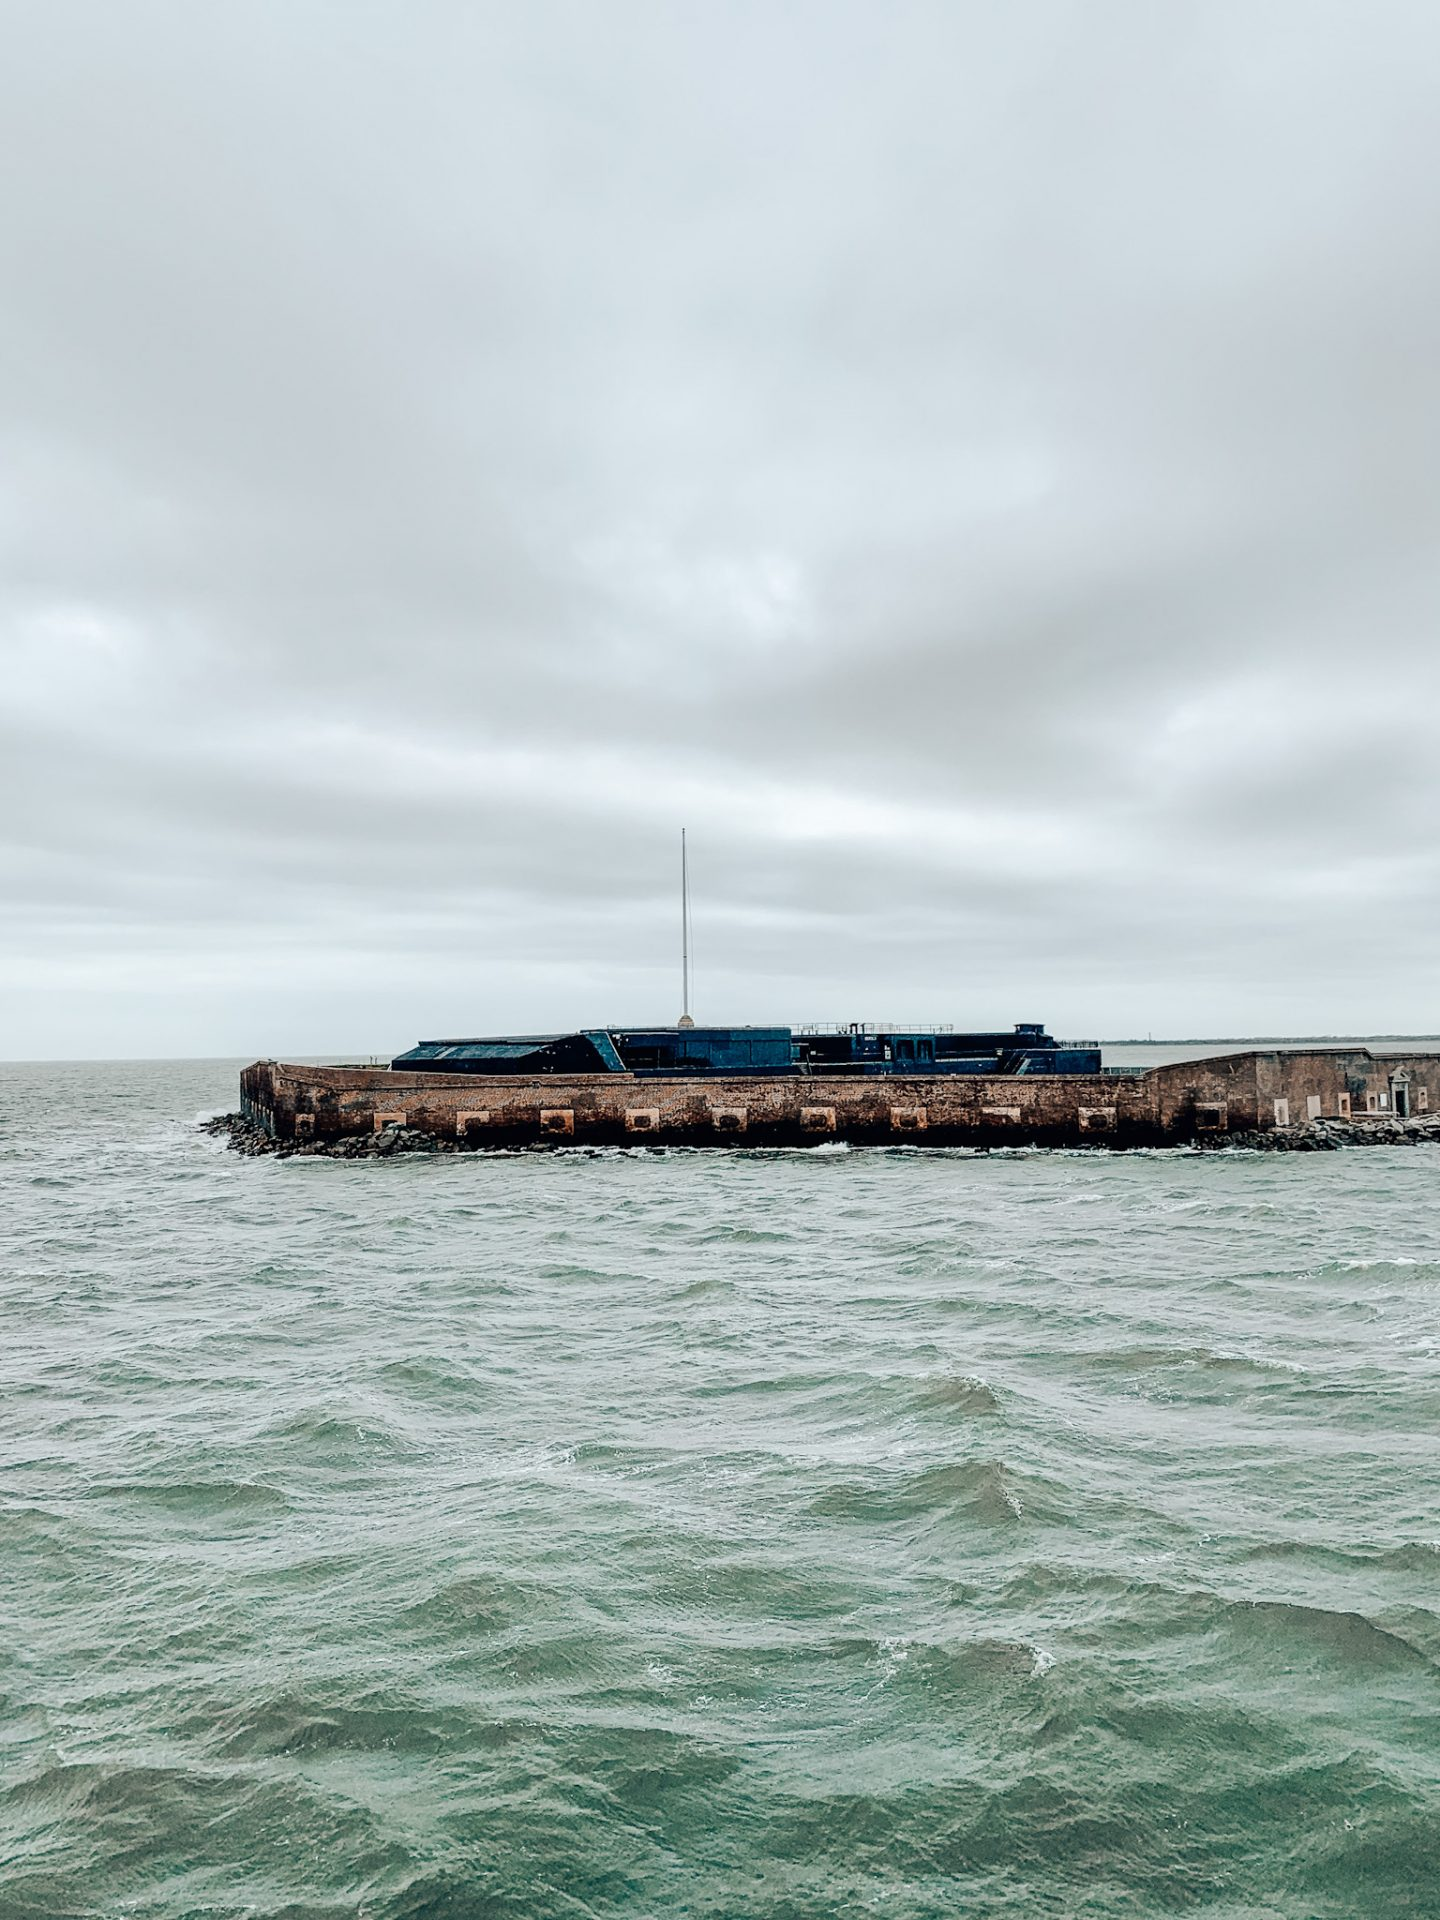 Fort Sumter in Charleston, SC